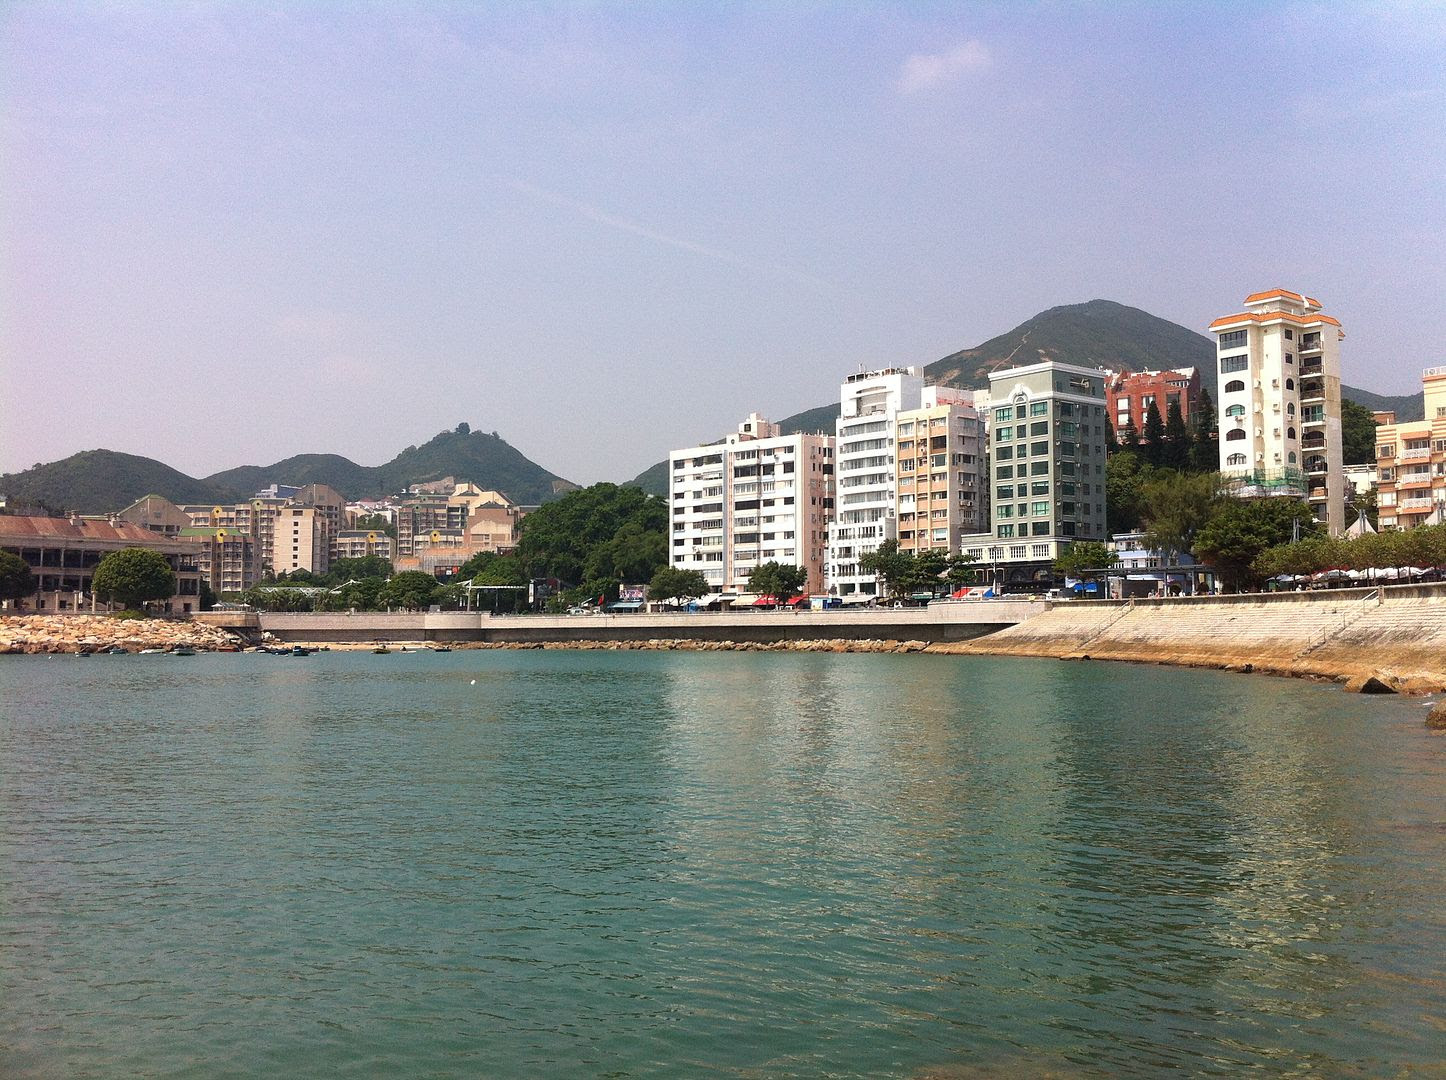 Repulse Bay in Hong Kong photo 2013-10-021310_zpse72c9b24.jpg